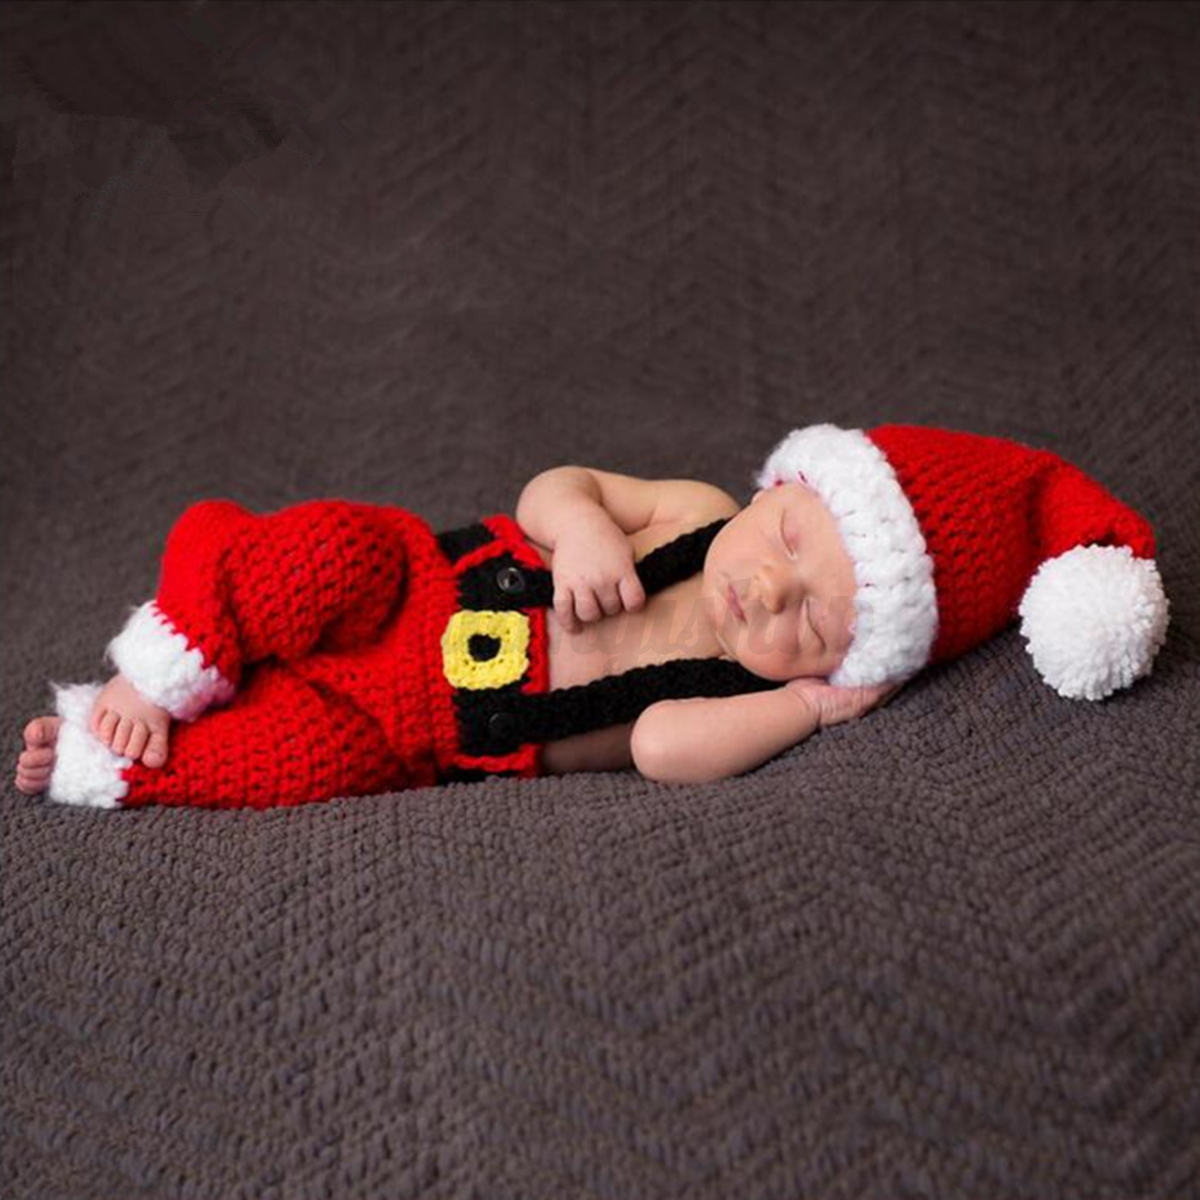 97a4191a7 cheap prices abfd3 ae750 christmas red sweater knit newborn pillow ...